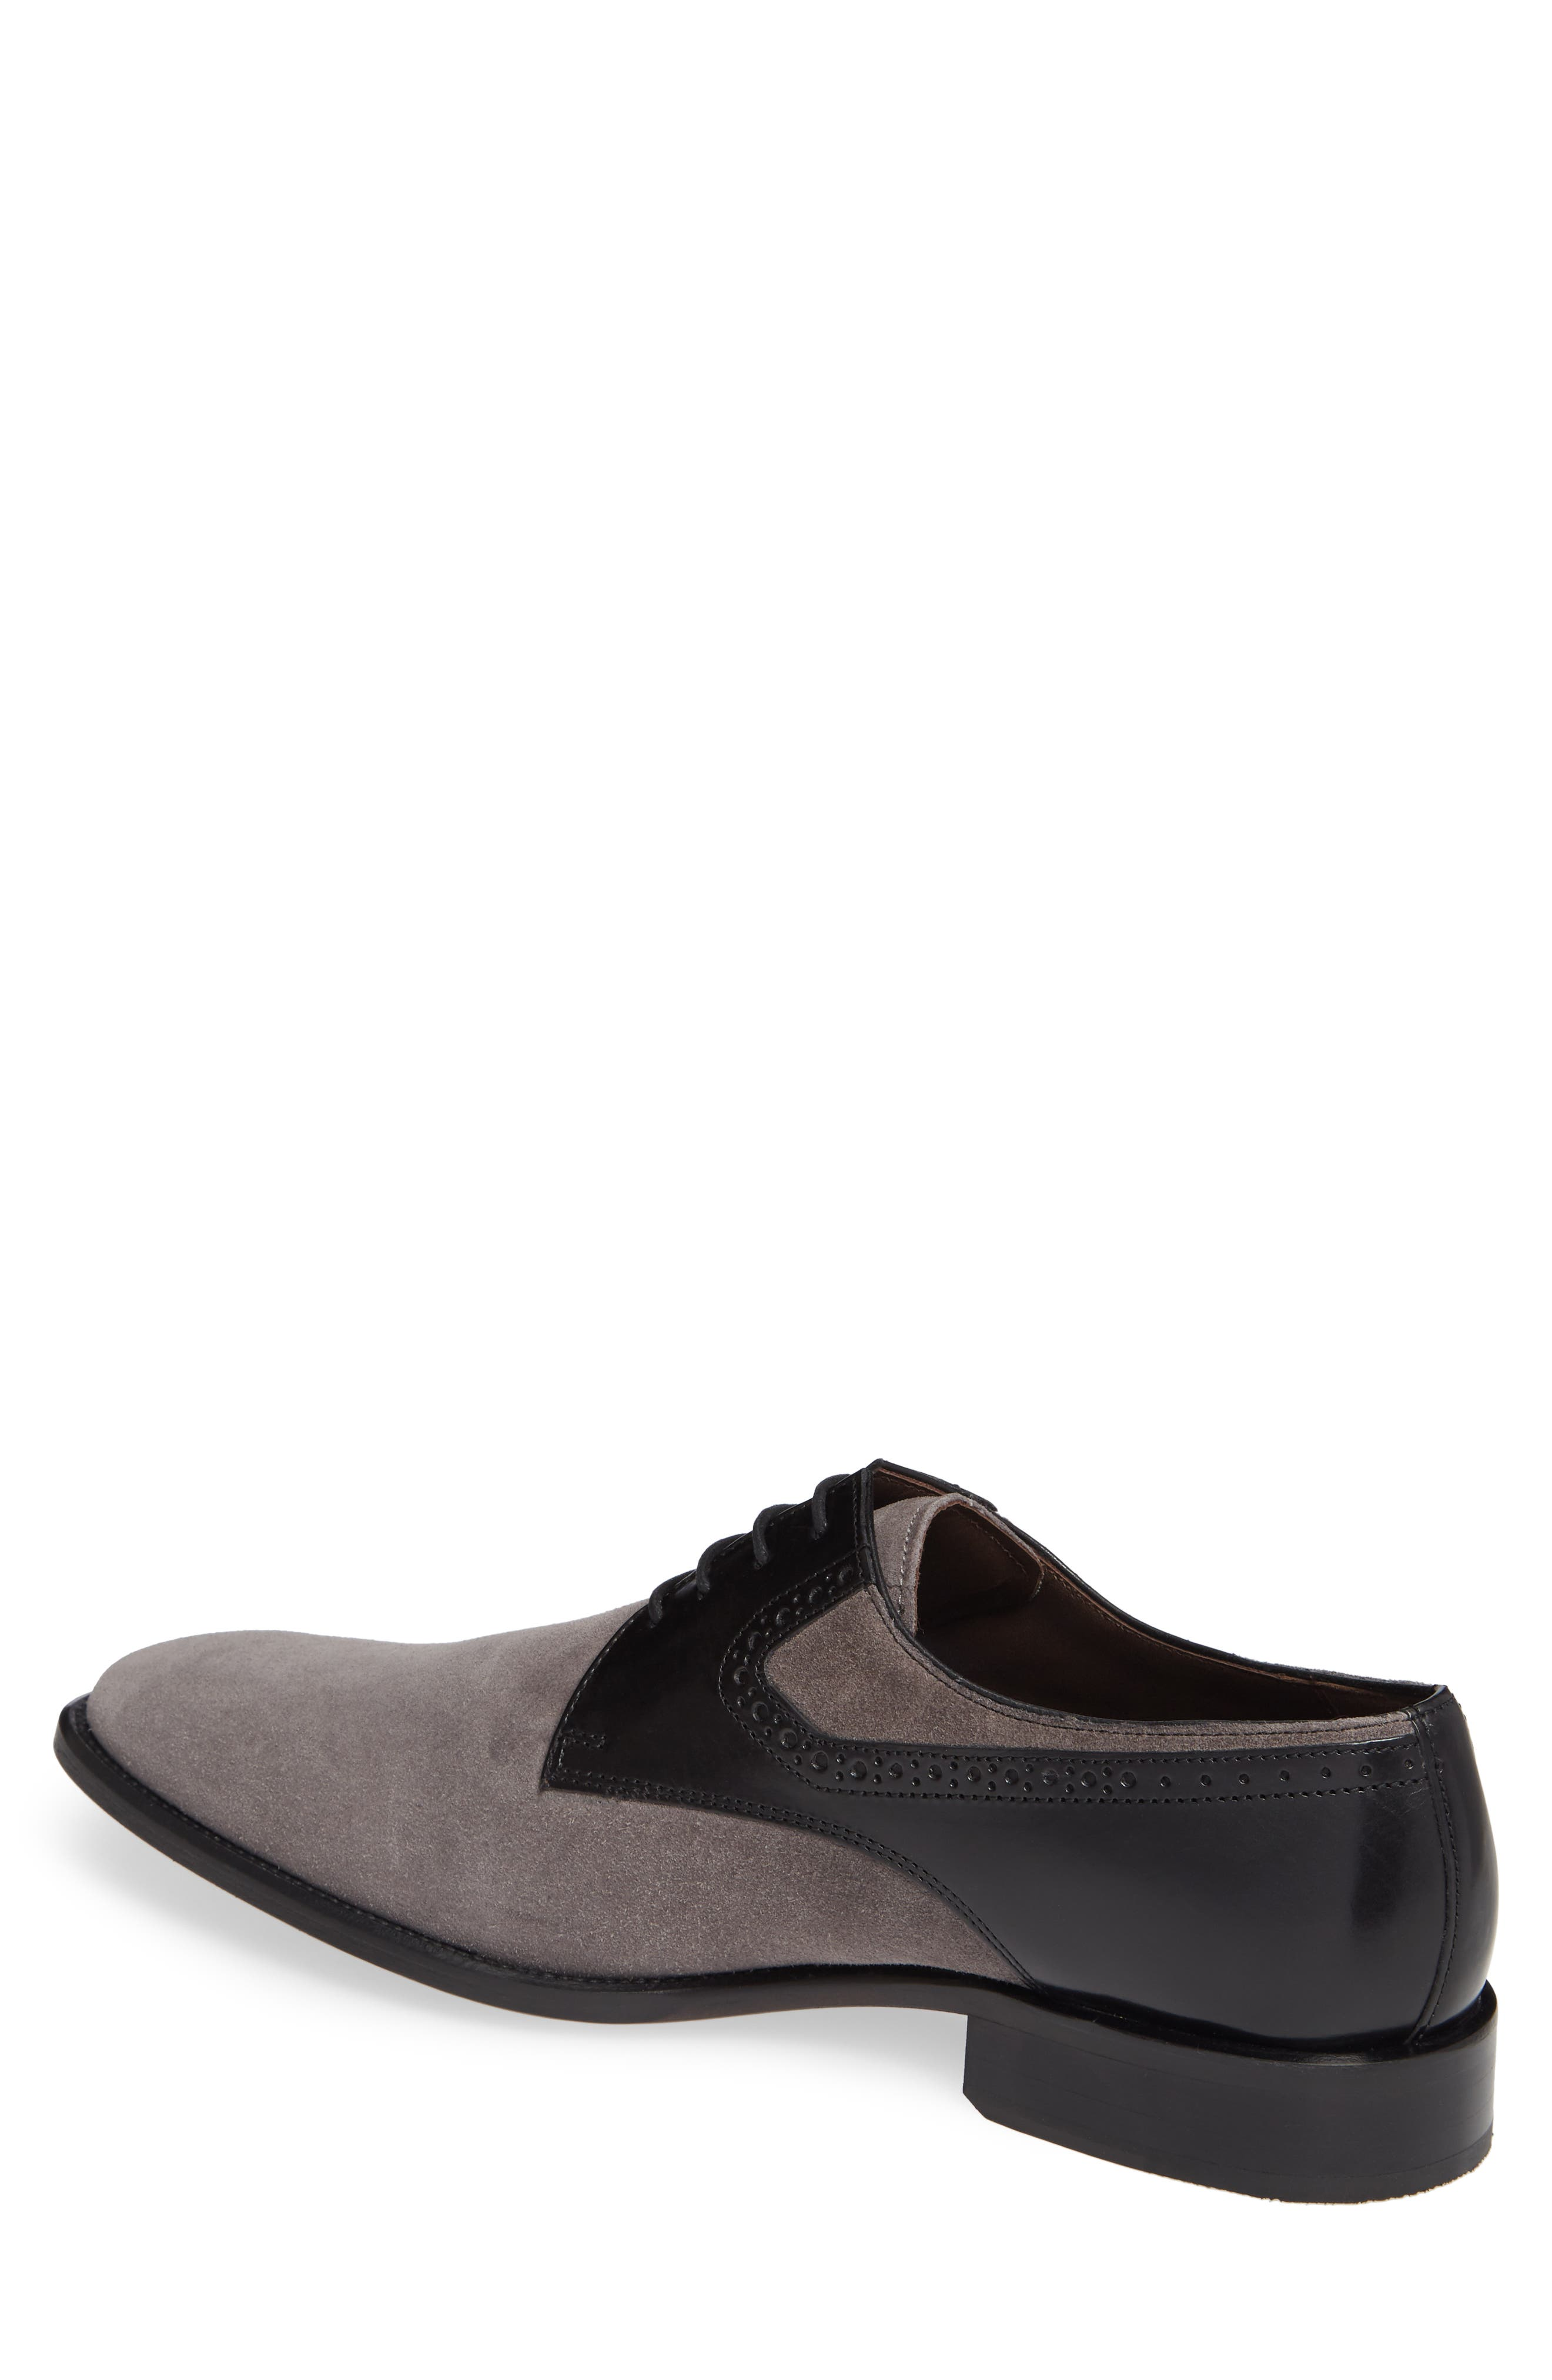 Maxwell Plain Toe Derby,                             Alternate thumbnail 2, color,                             GREY SUEDE